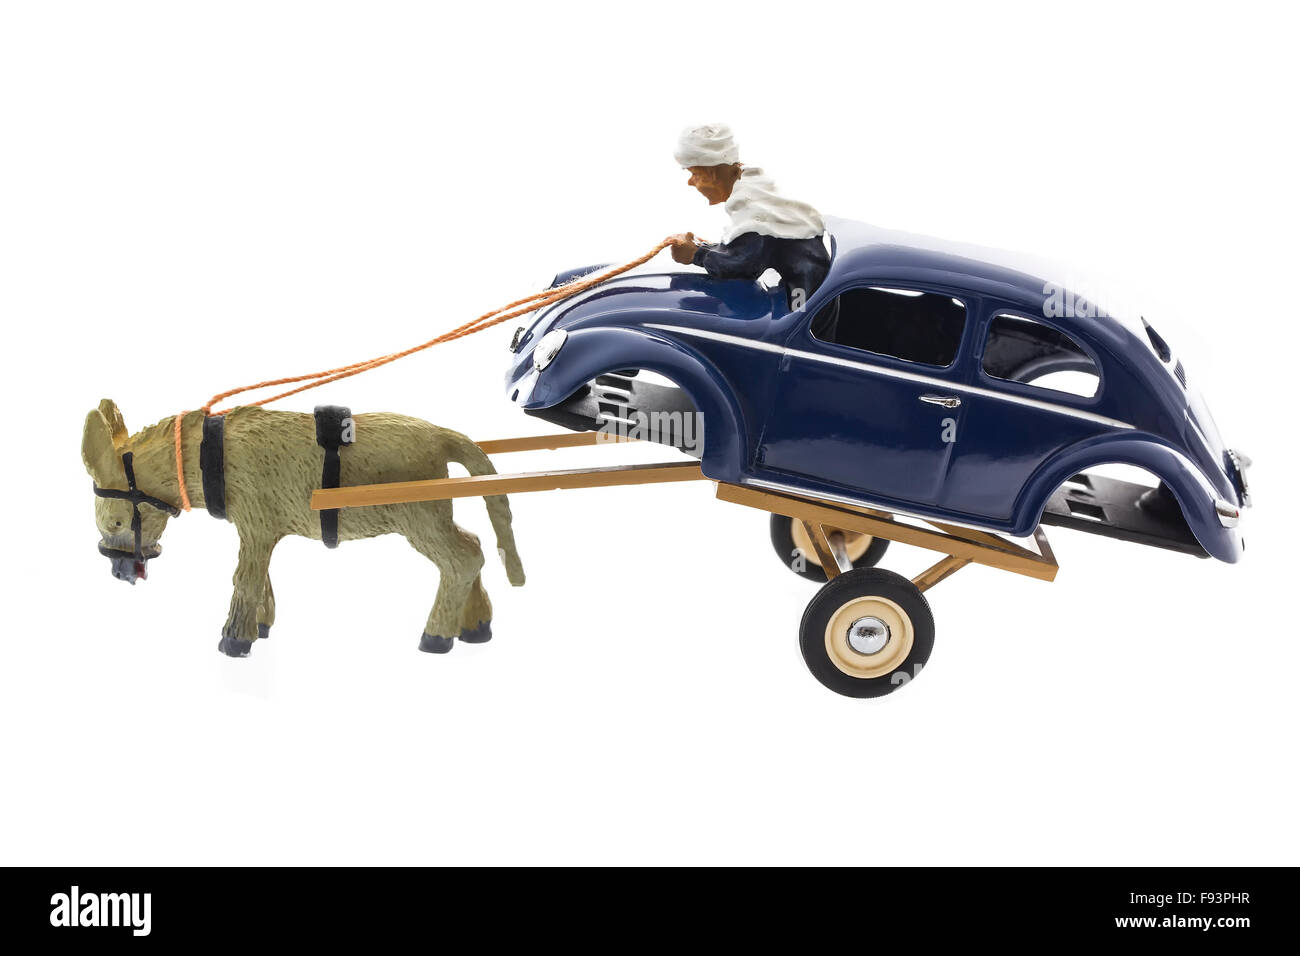 VW body on a trailer pulled by a Donkey Die cast model on a white background. - Stock Image